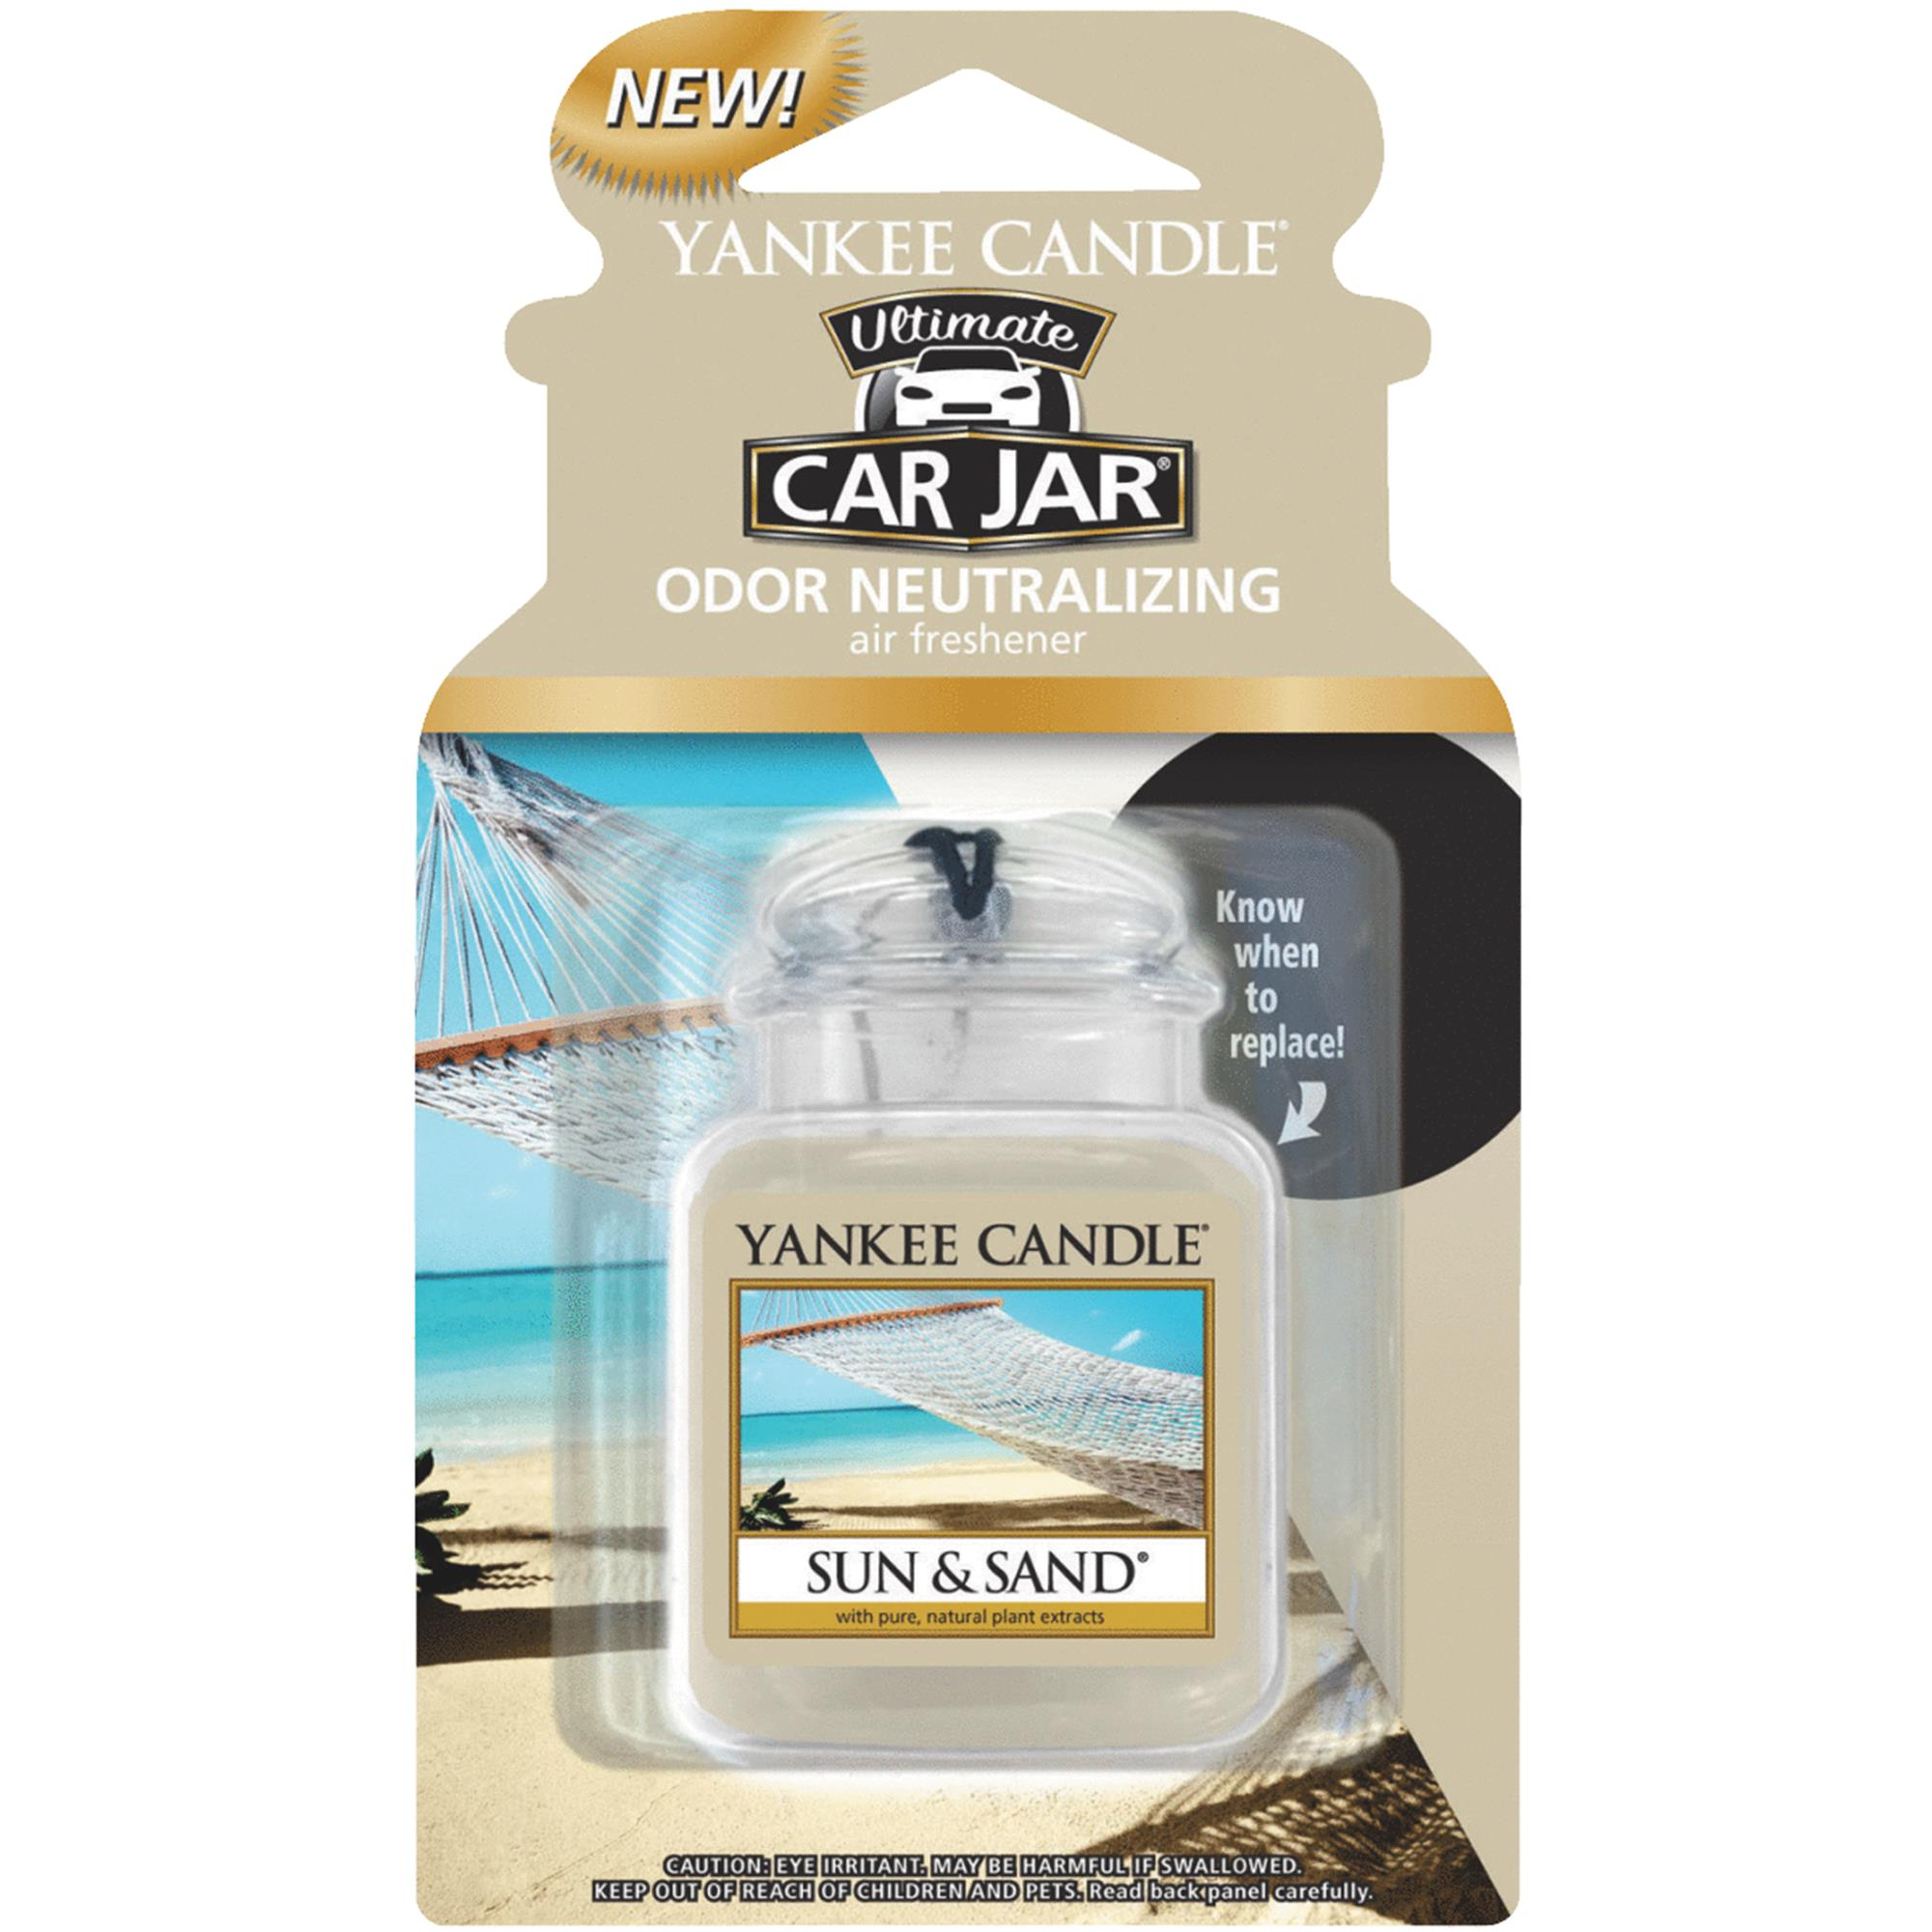 Yankee Candle Car Jar Ultimate Car Air Freshener